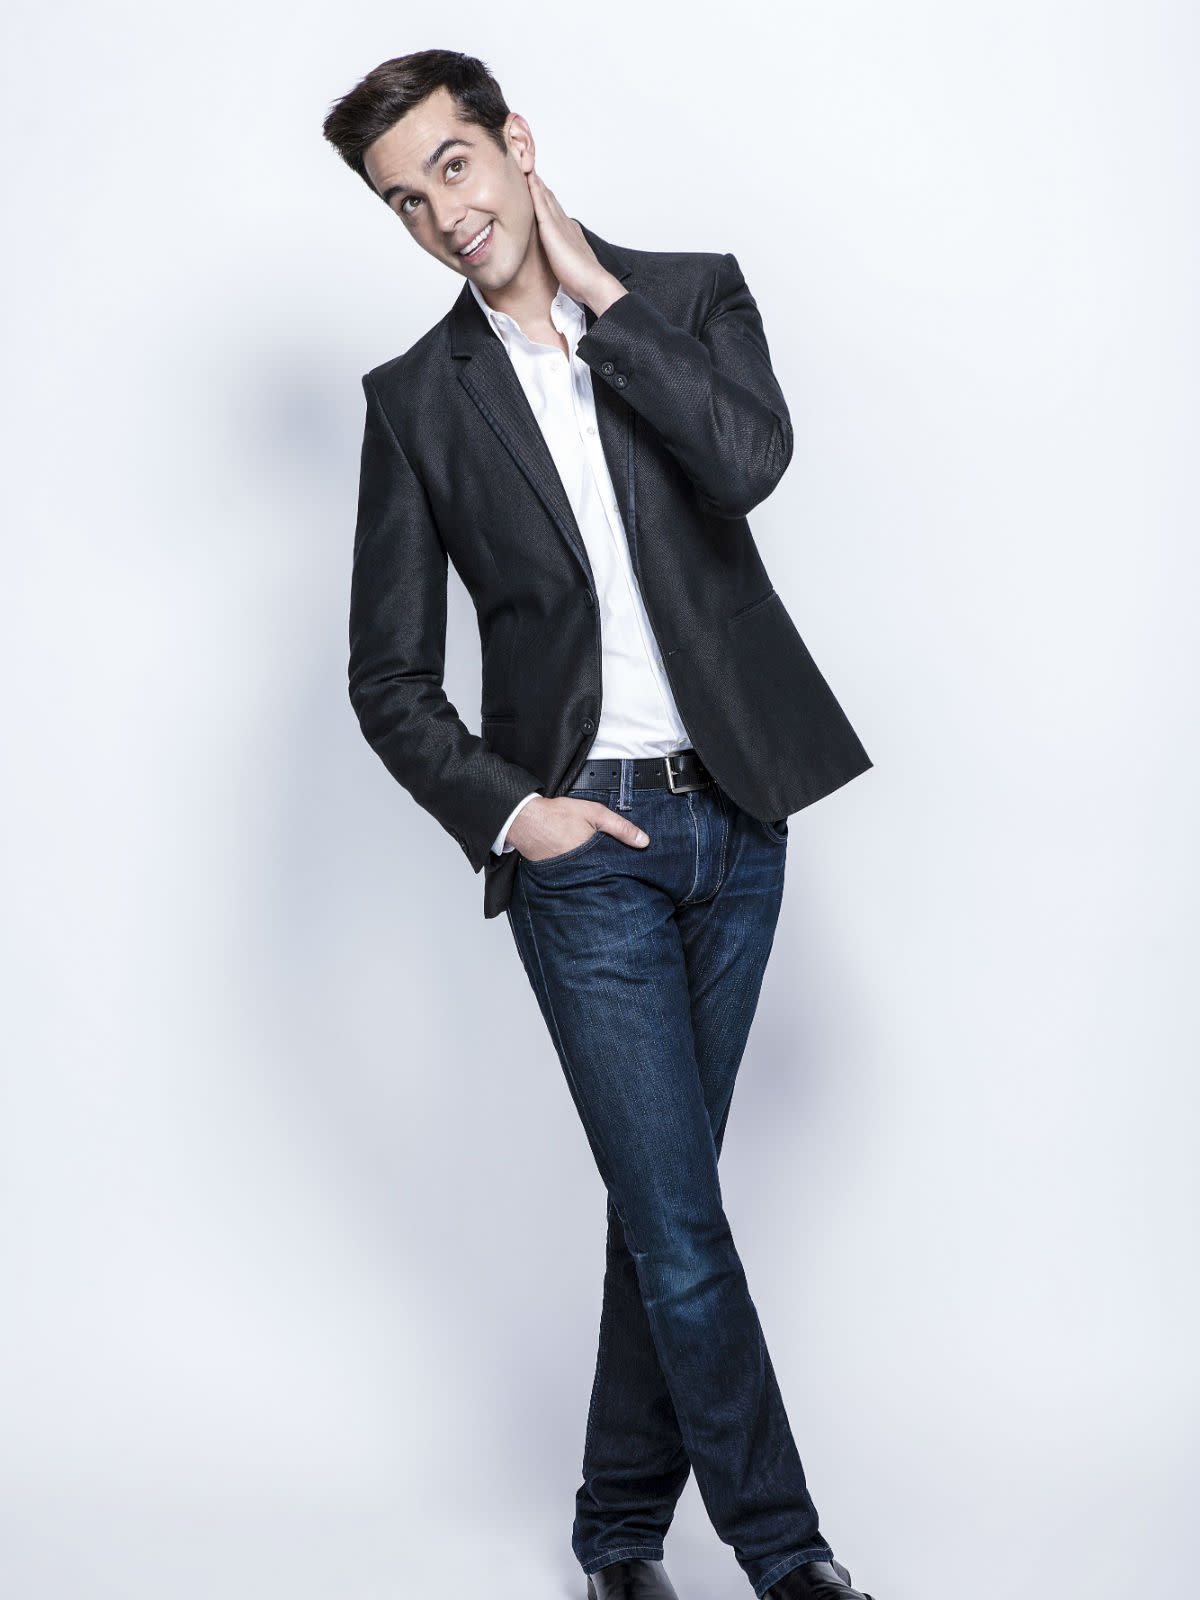 Michael Carbonaro